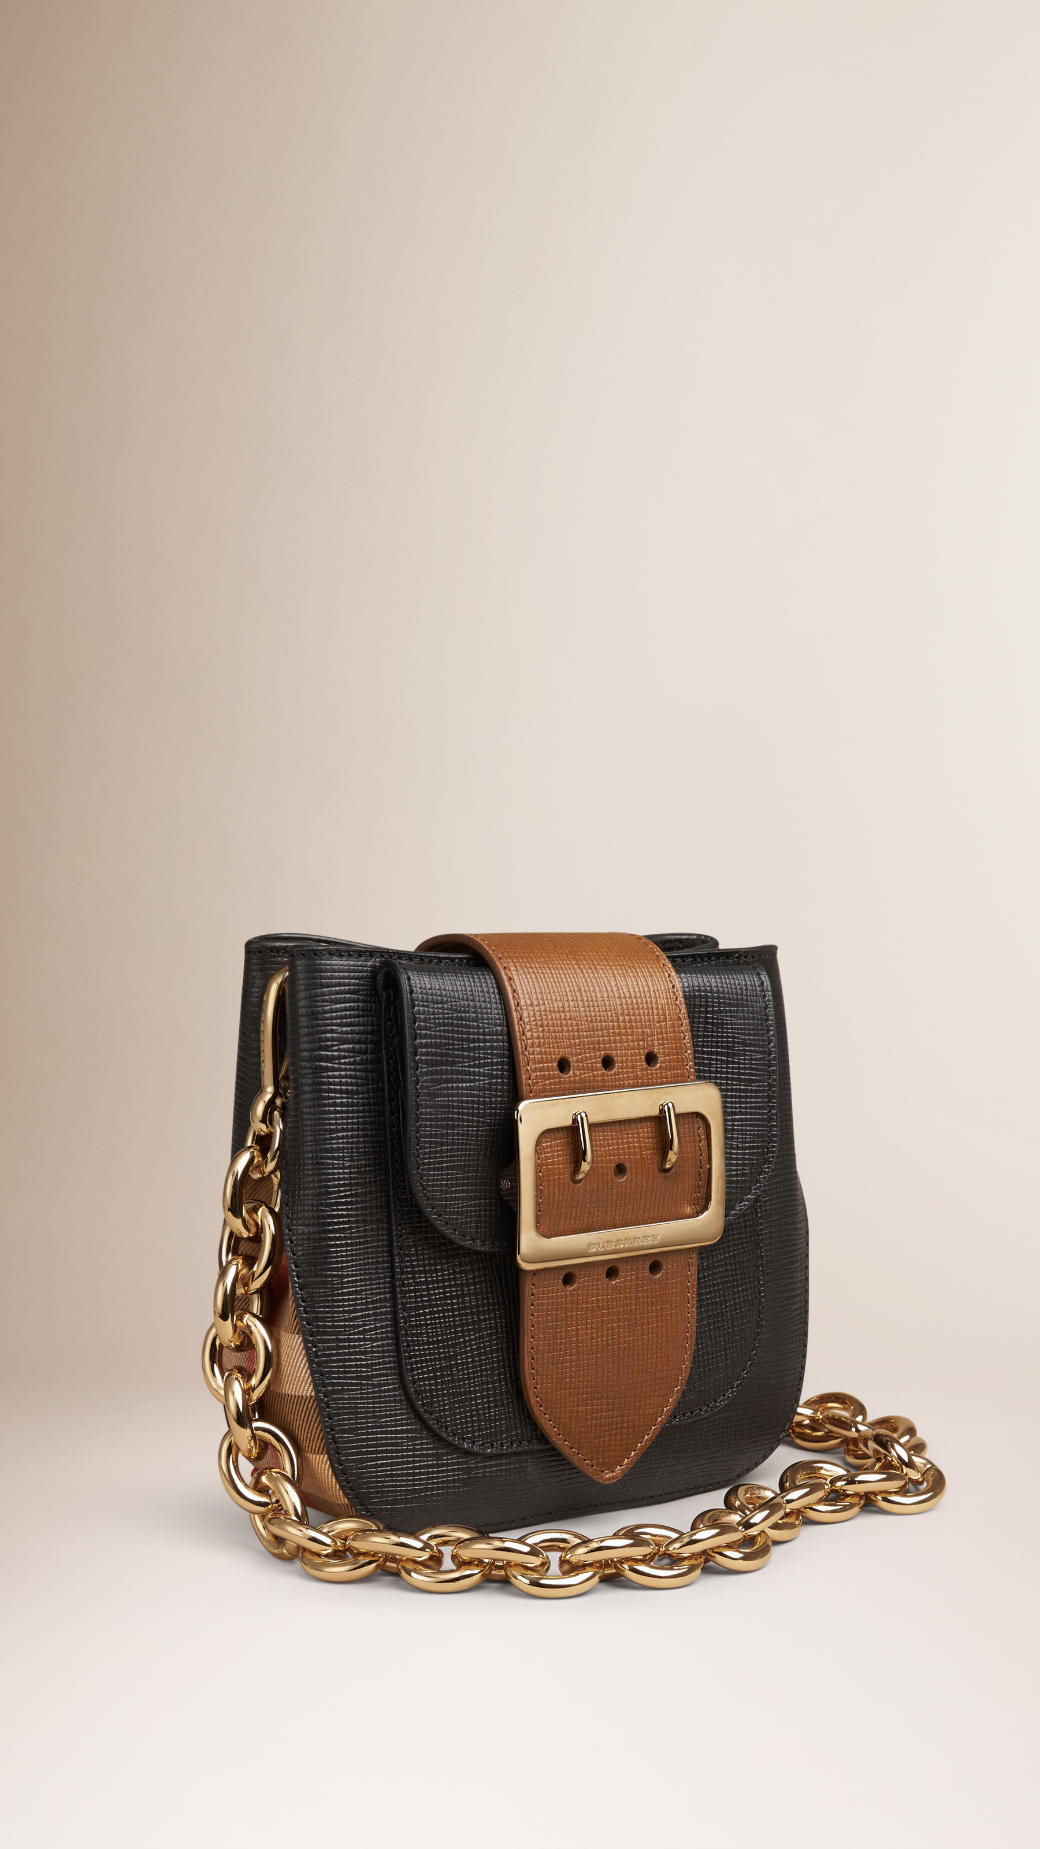 burberry the small belt bag square in leather and house